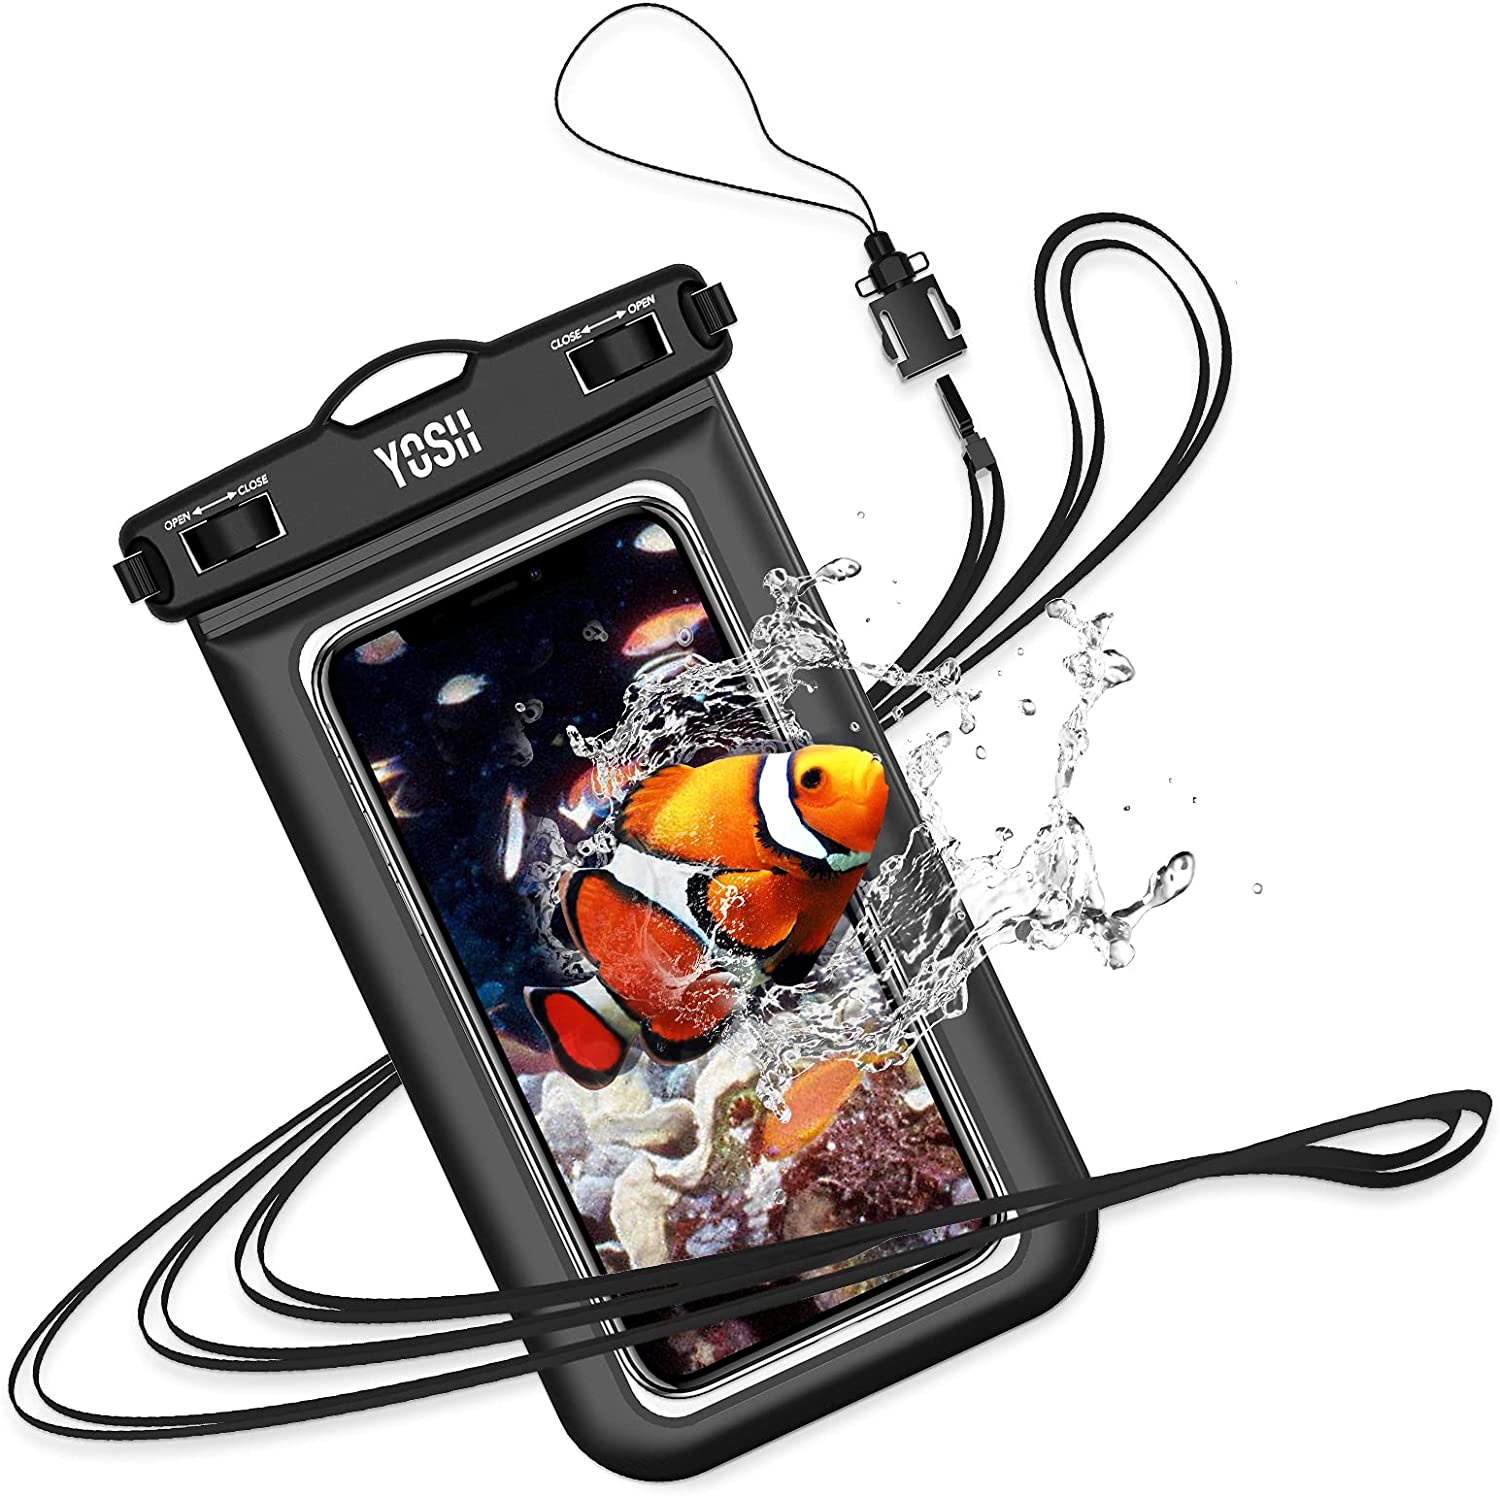 YOSH Waterproof Phone Case Universal Waterproof Phone Pouch IPX8 Dry Bag Compatible for iPhone 12 11 SE X 8 7 6 Galaxy S20 Pixel up to 6.8